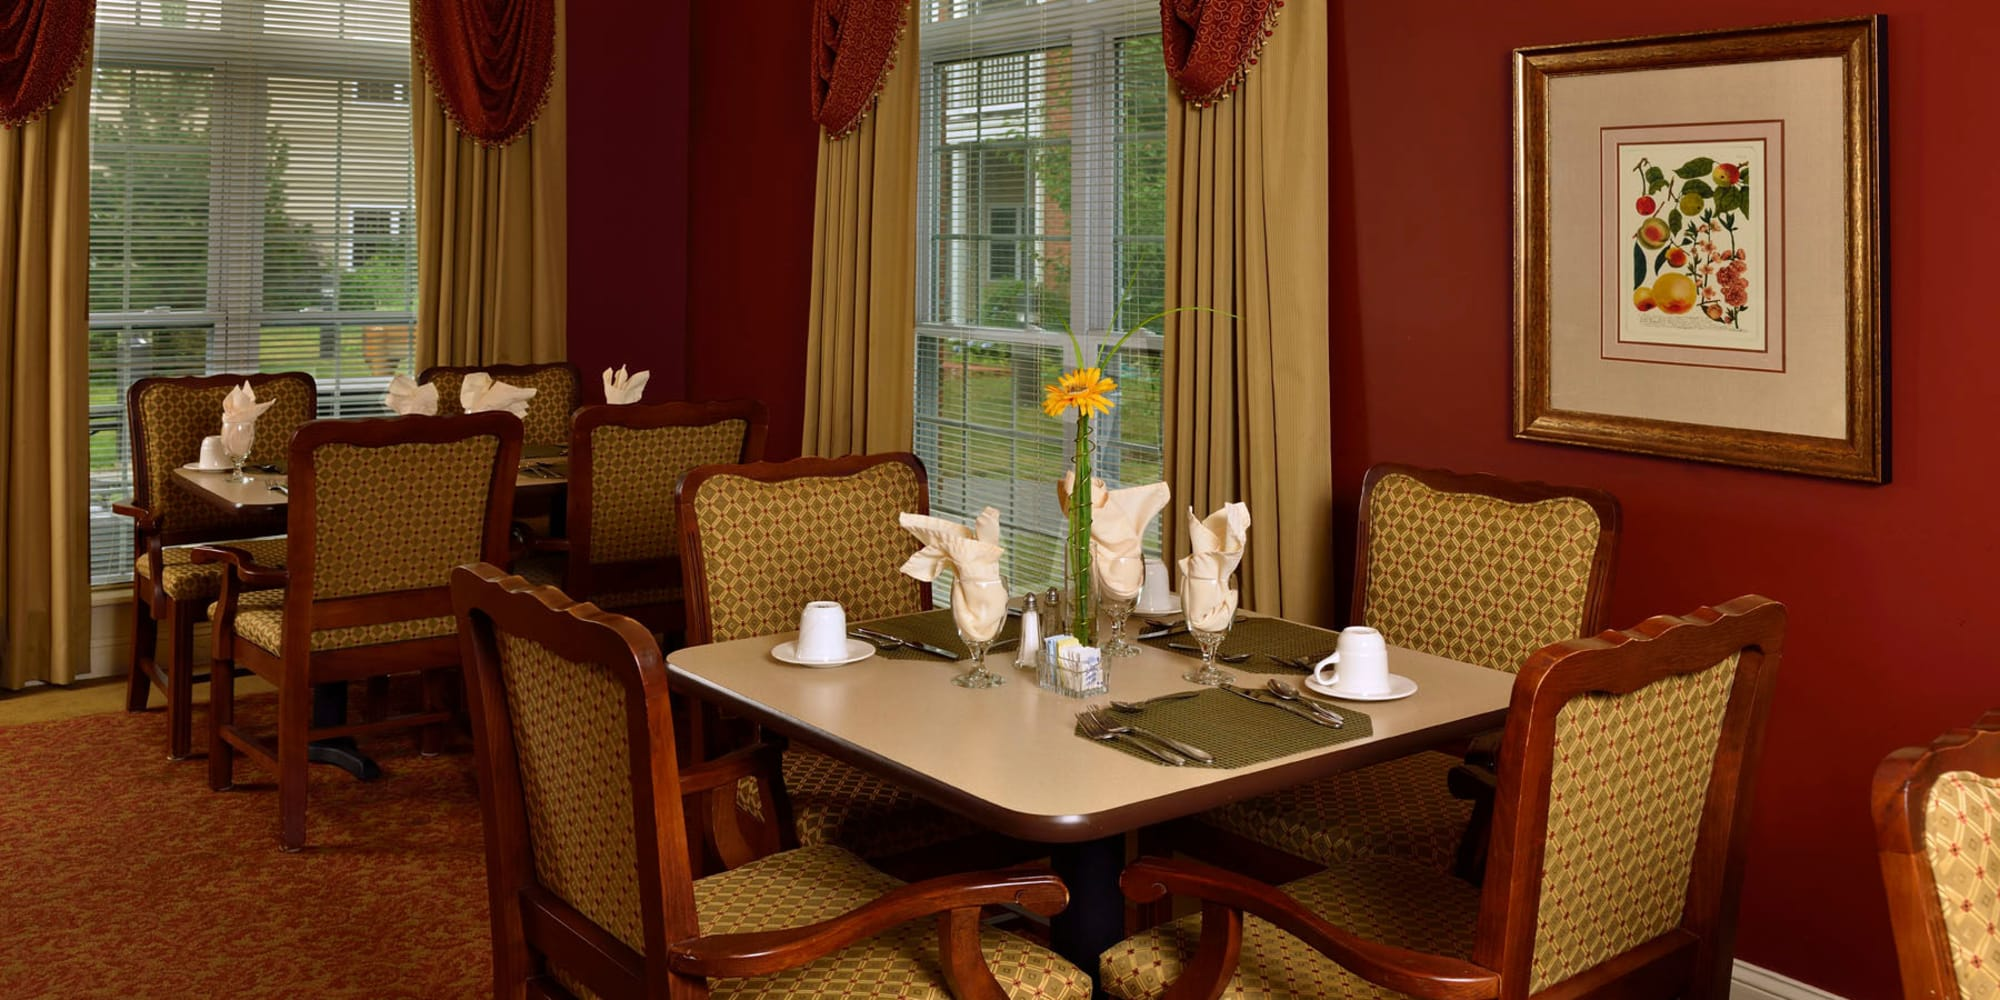 Resident dining room at Keystone Commons in Ludlow, Massachusetts.